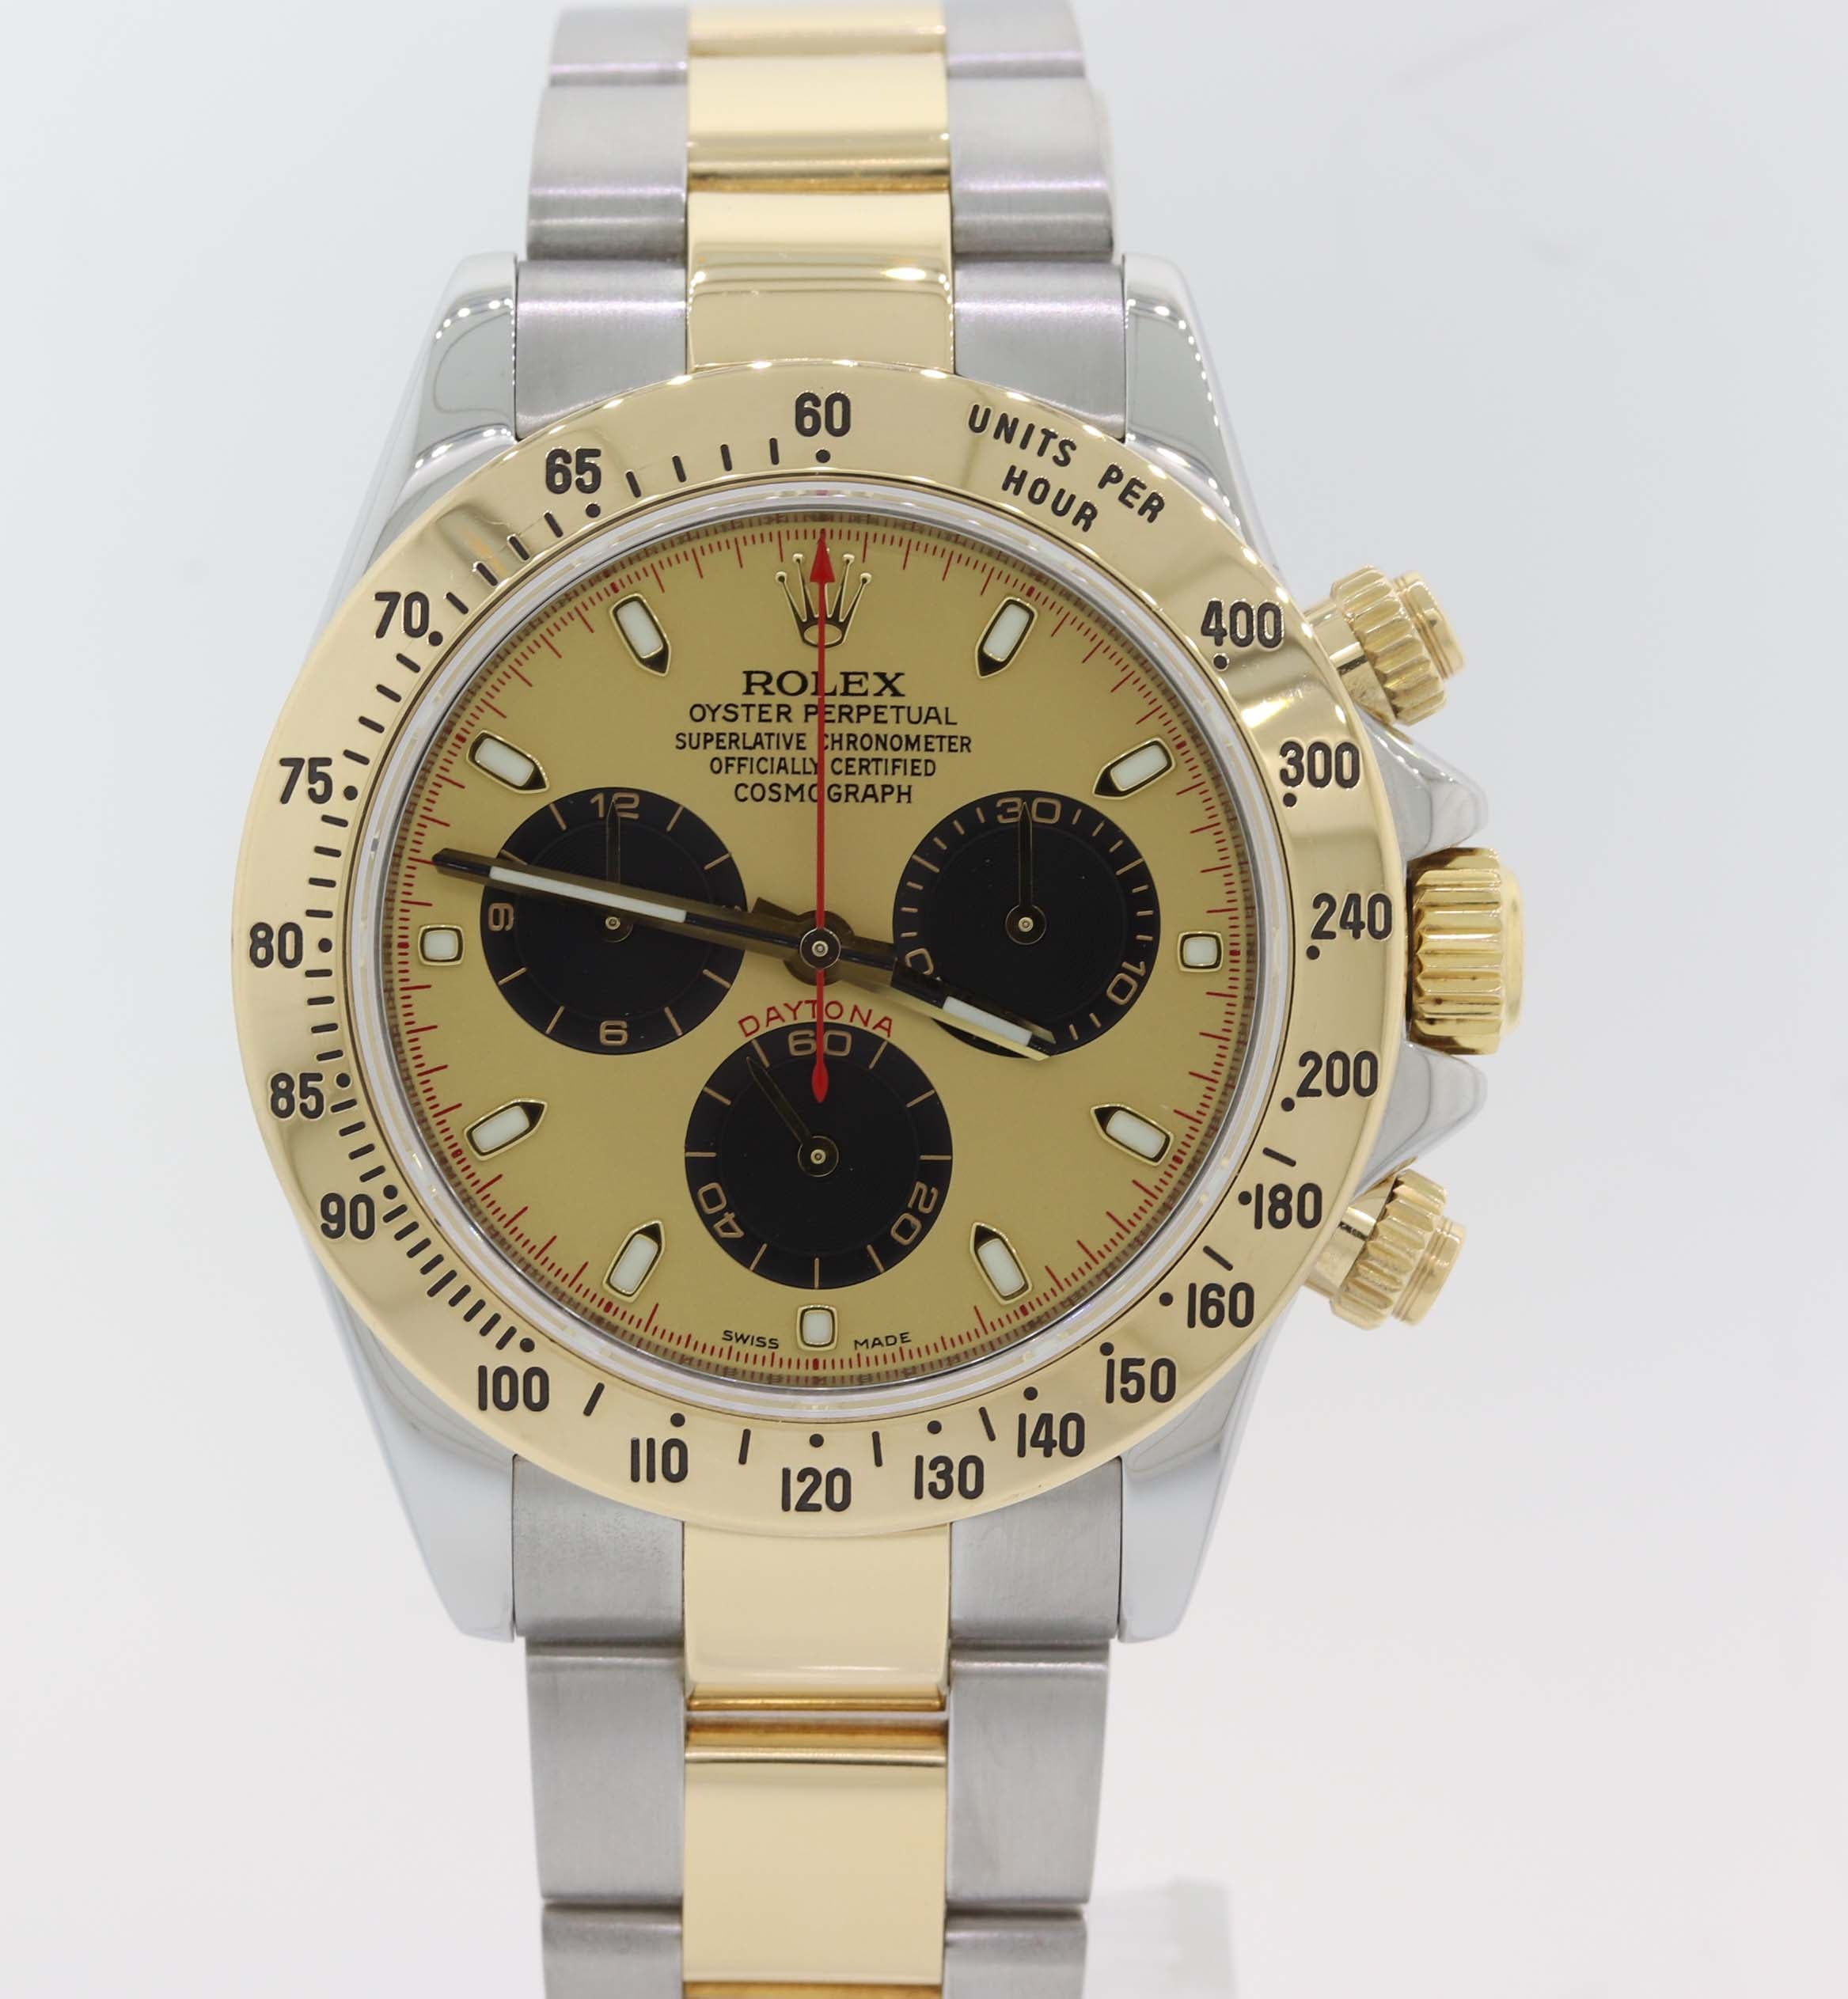 MINT Rolex Daytona Paul Newman Black 116523 18k Yellow Gold Steel Two Tone Watch